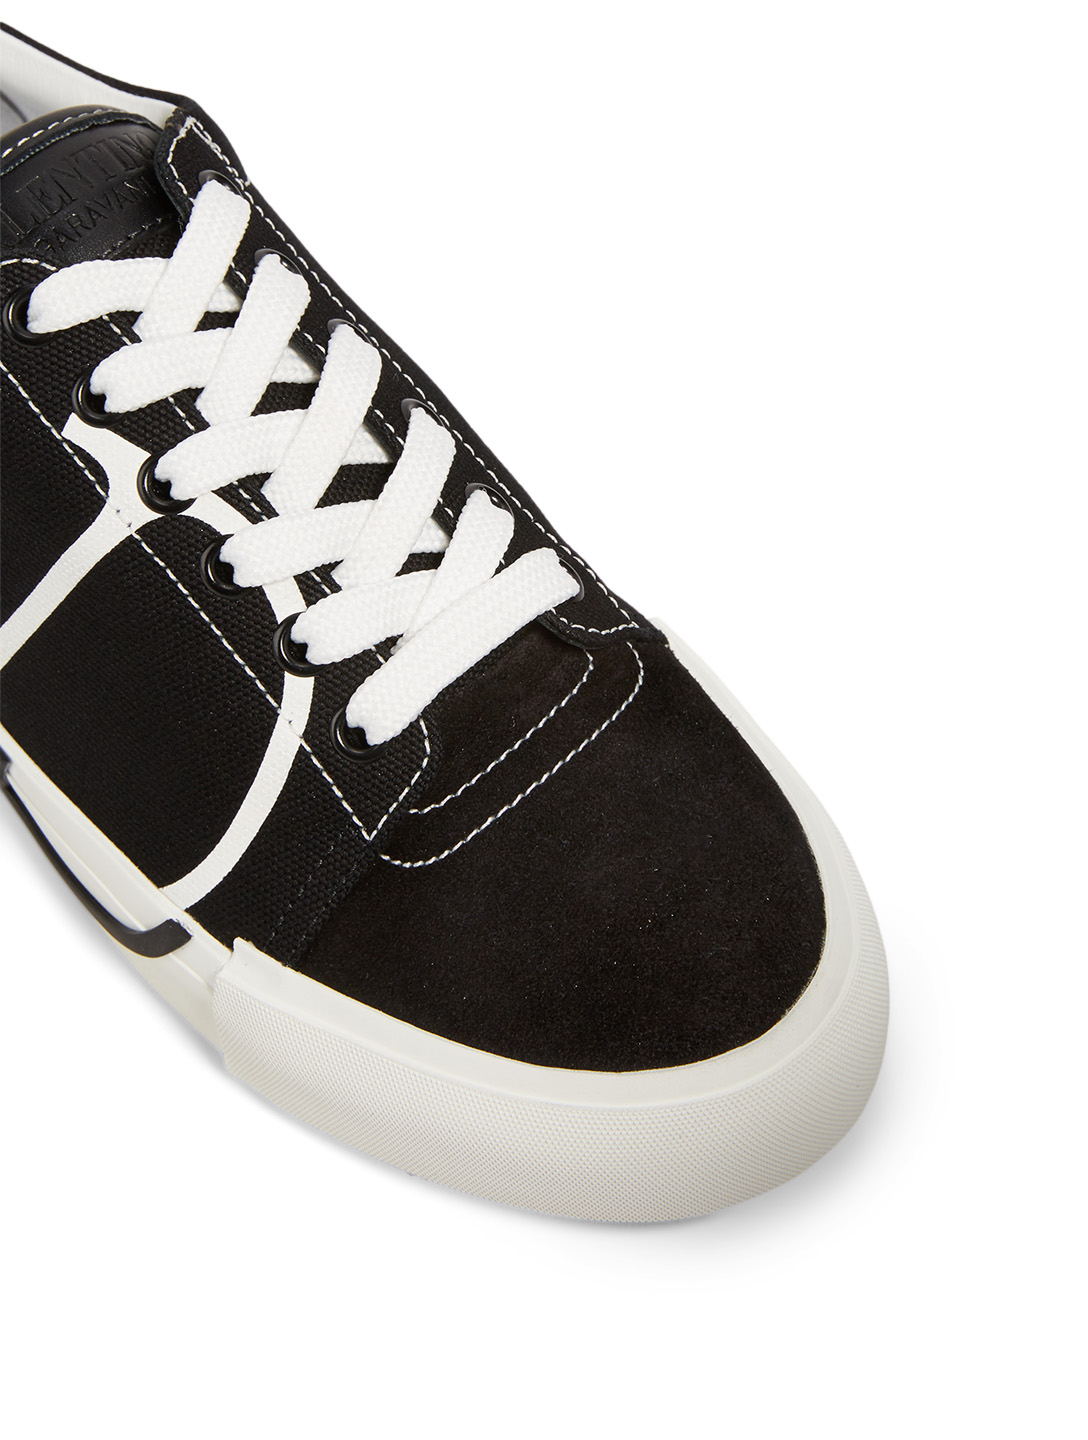 VALENTINO GARAVANI Tricks Leather Sneakers With VLOGO Women's Black